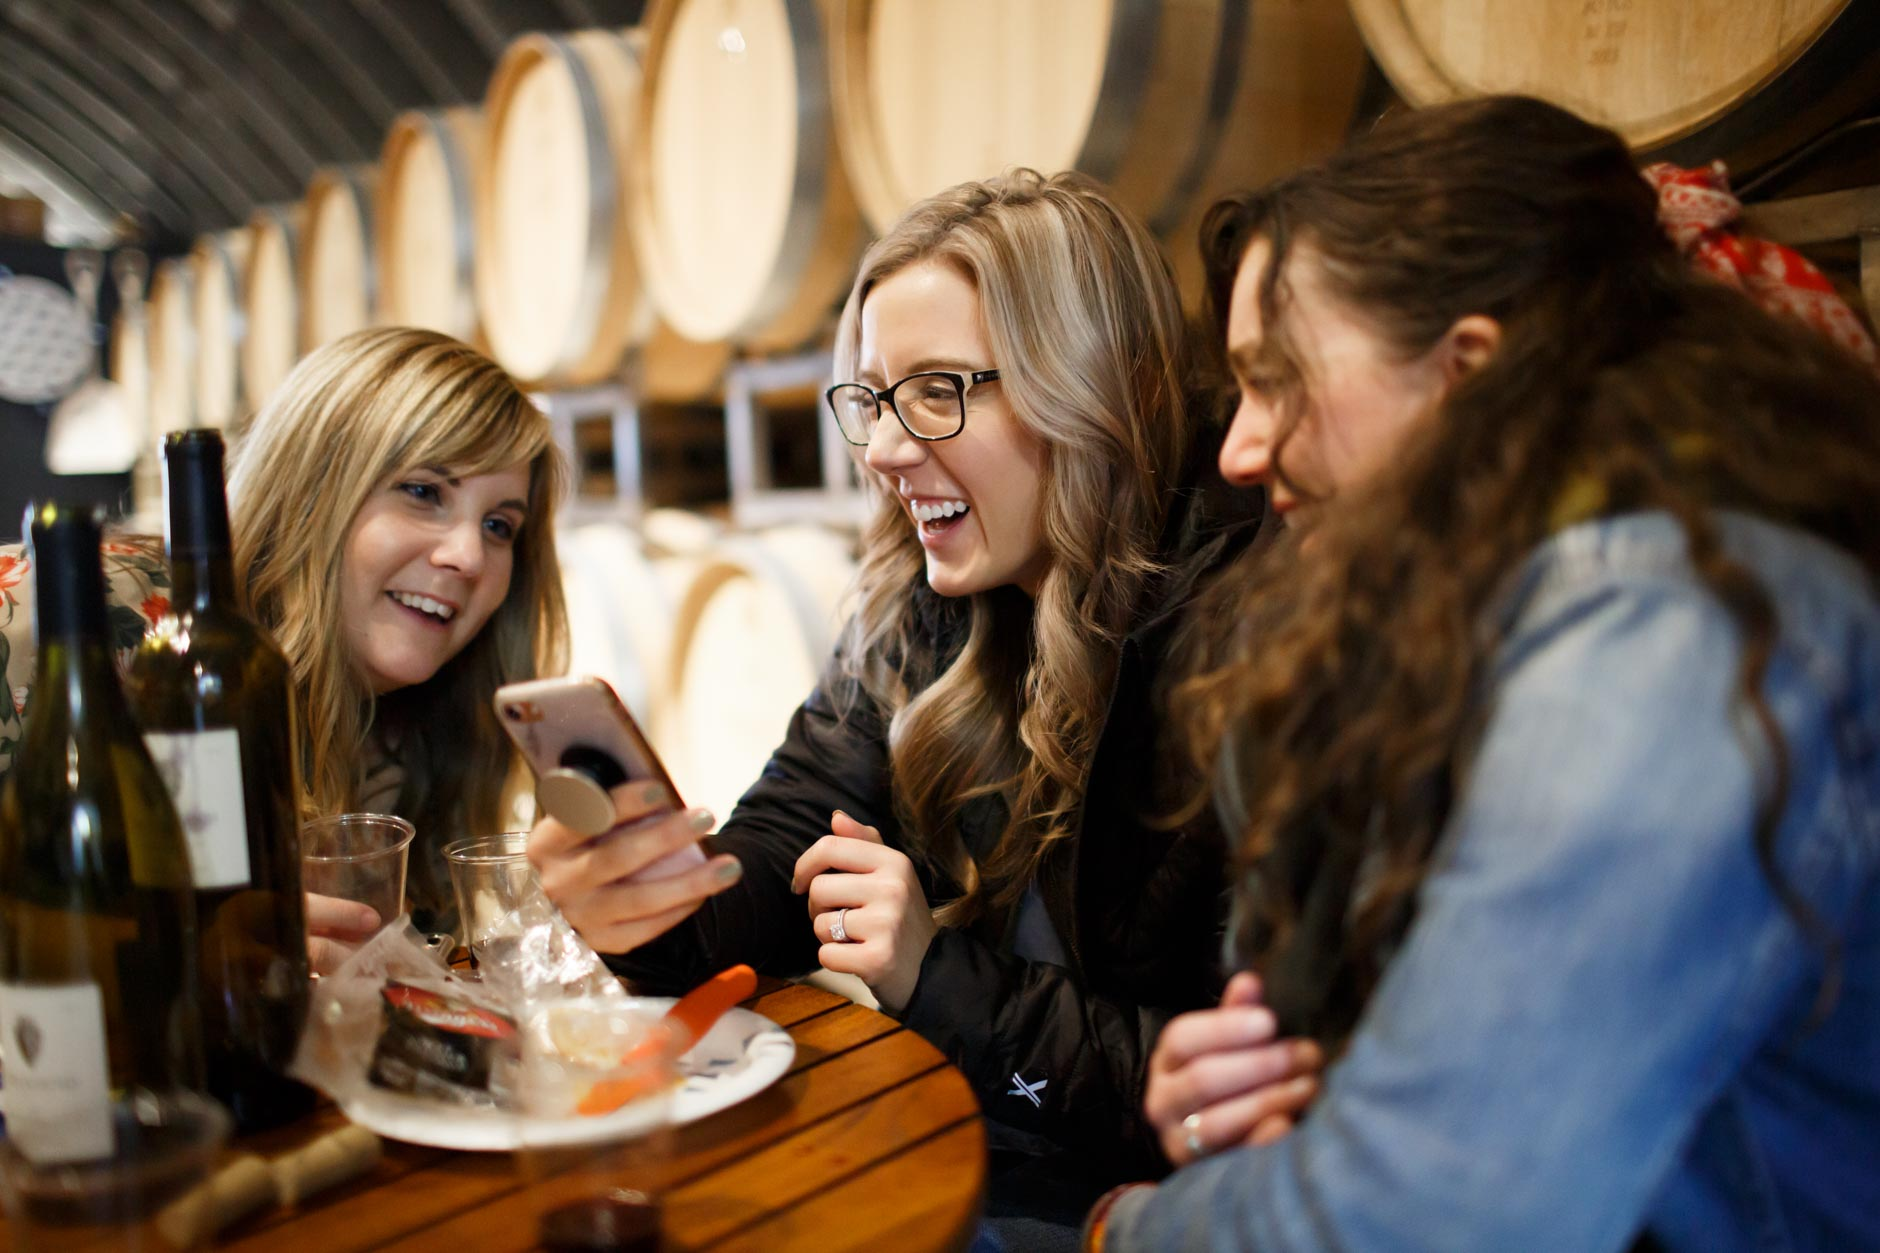 Barbara Brosher, left, Katie Carragher and Emily Mieure laugh at Oliver Winery in Bloomington, Indiana on Sunday, Jan. 27, 2019. (Photo by James Brosher)